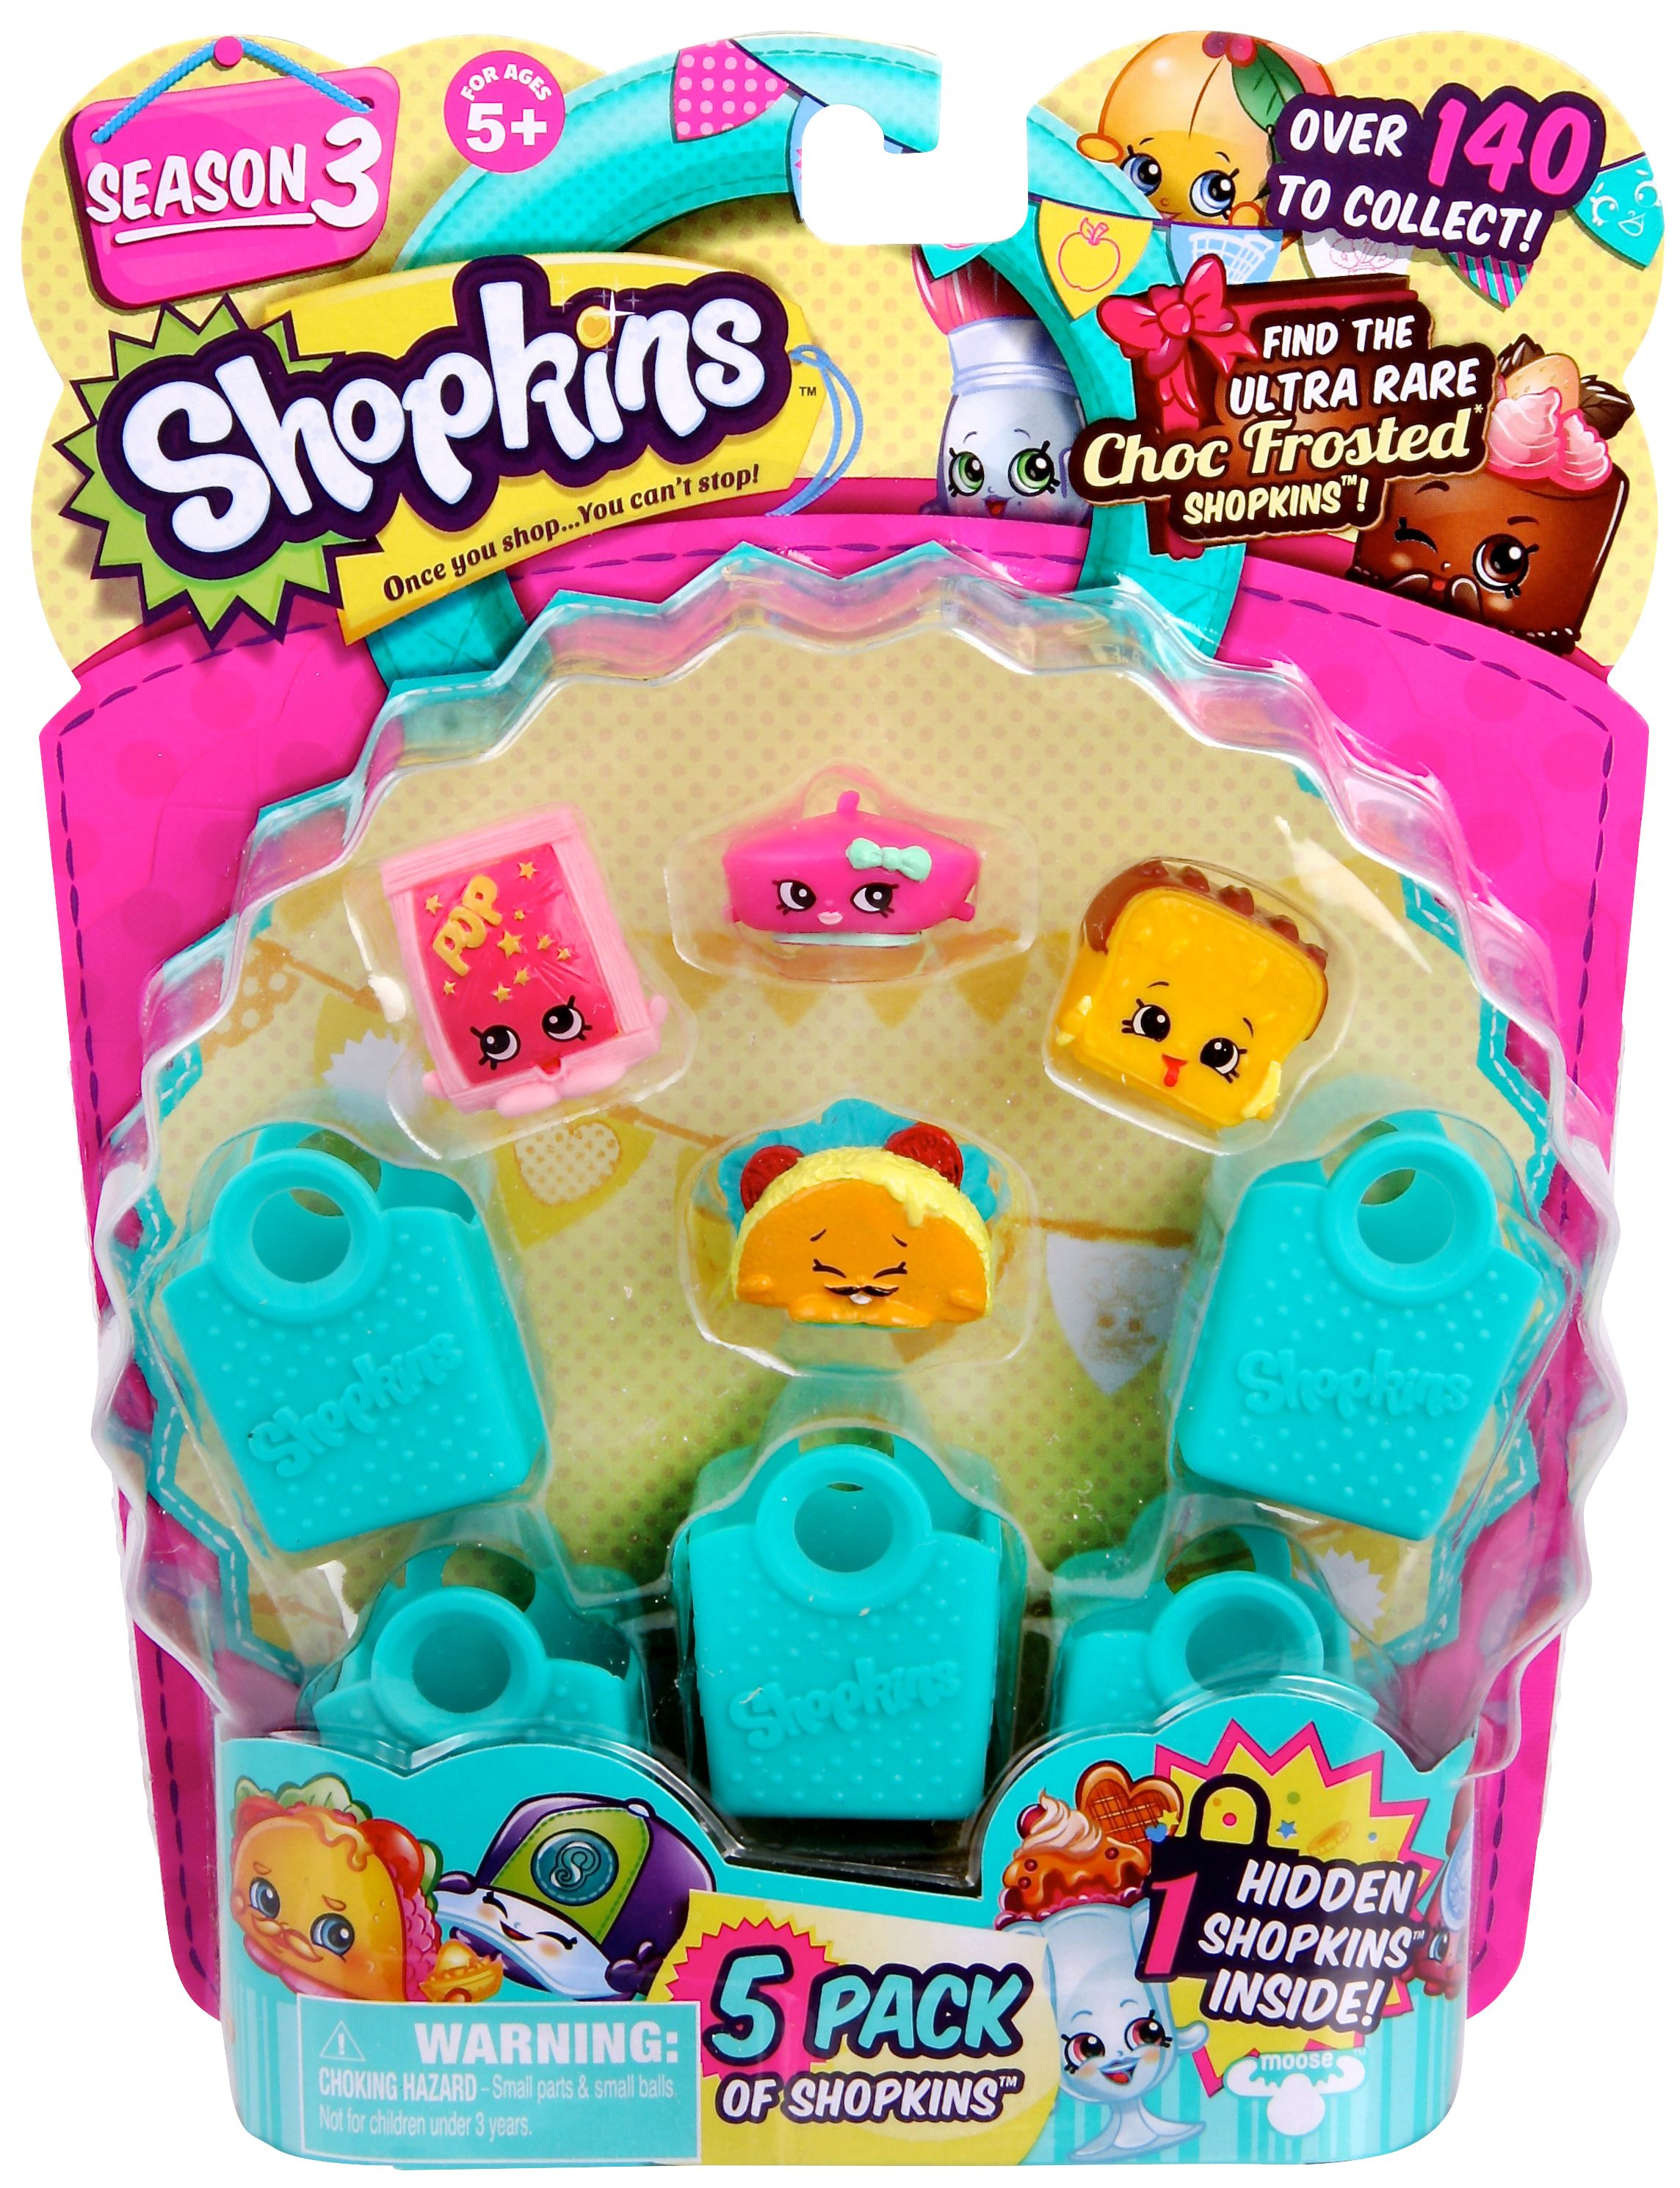 SHOPKINS 5 PACK S3 - Planet Fun. Increase your chances of finding a rare Shopkin or just adding to your colelction with this awesome Shopkins Season three 5 pack!